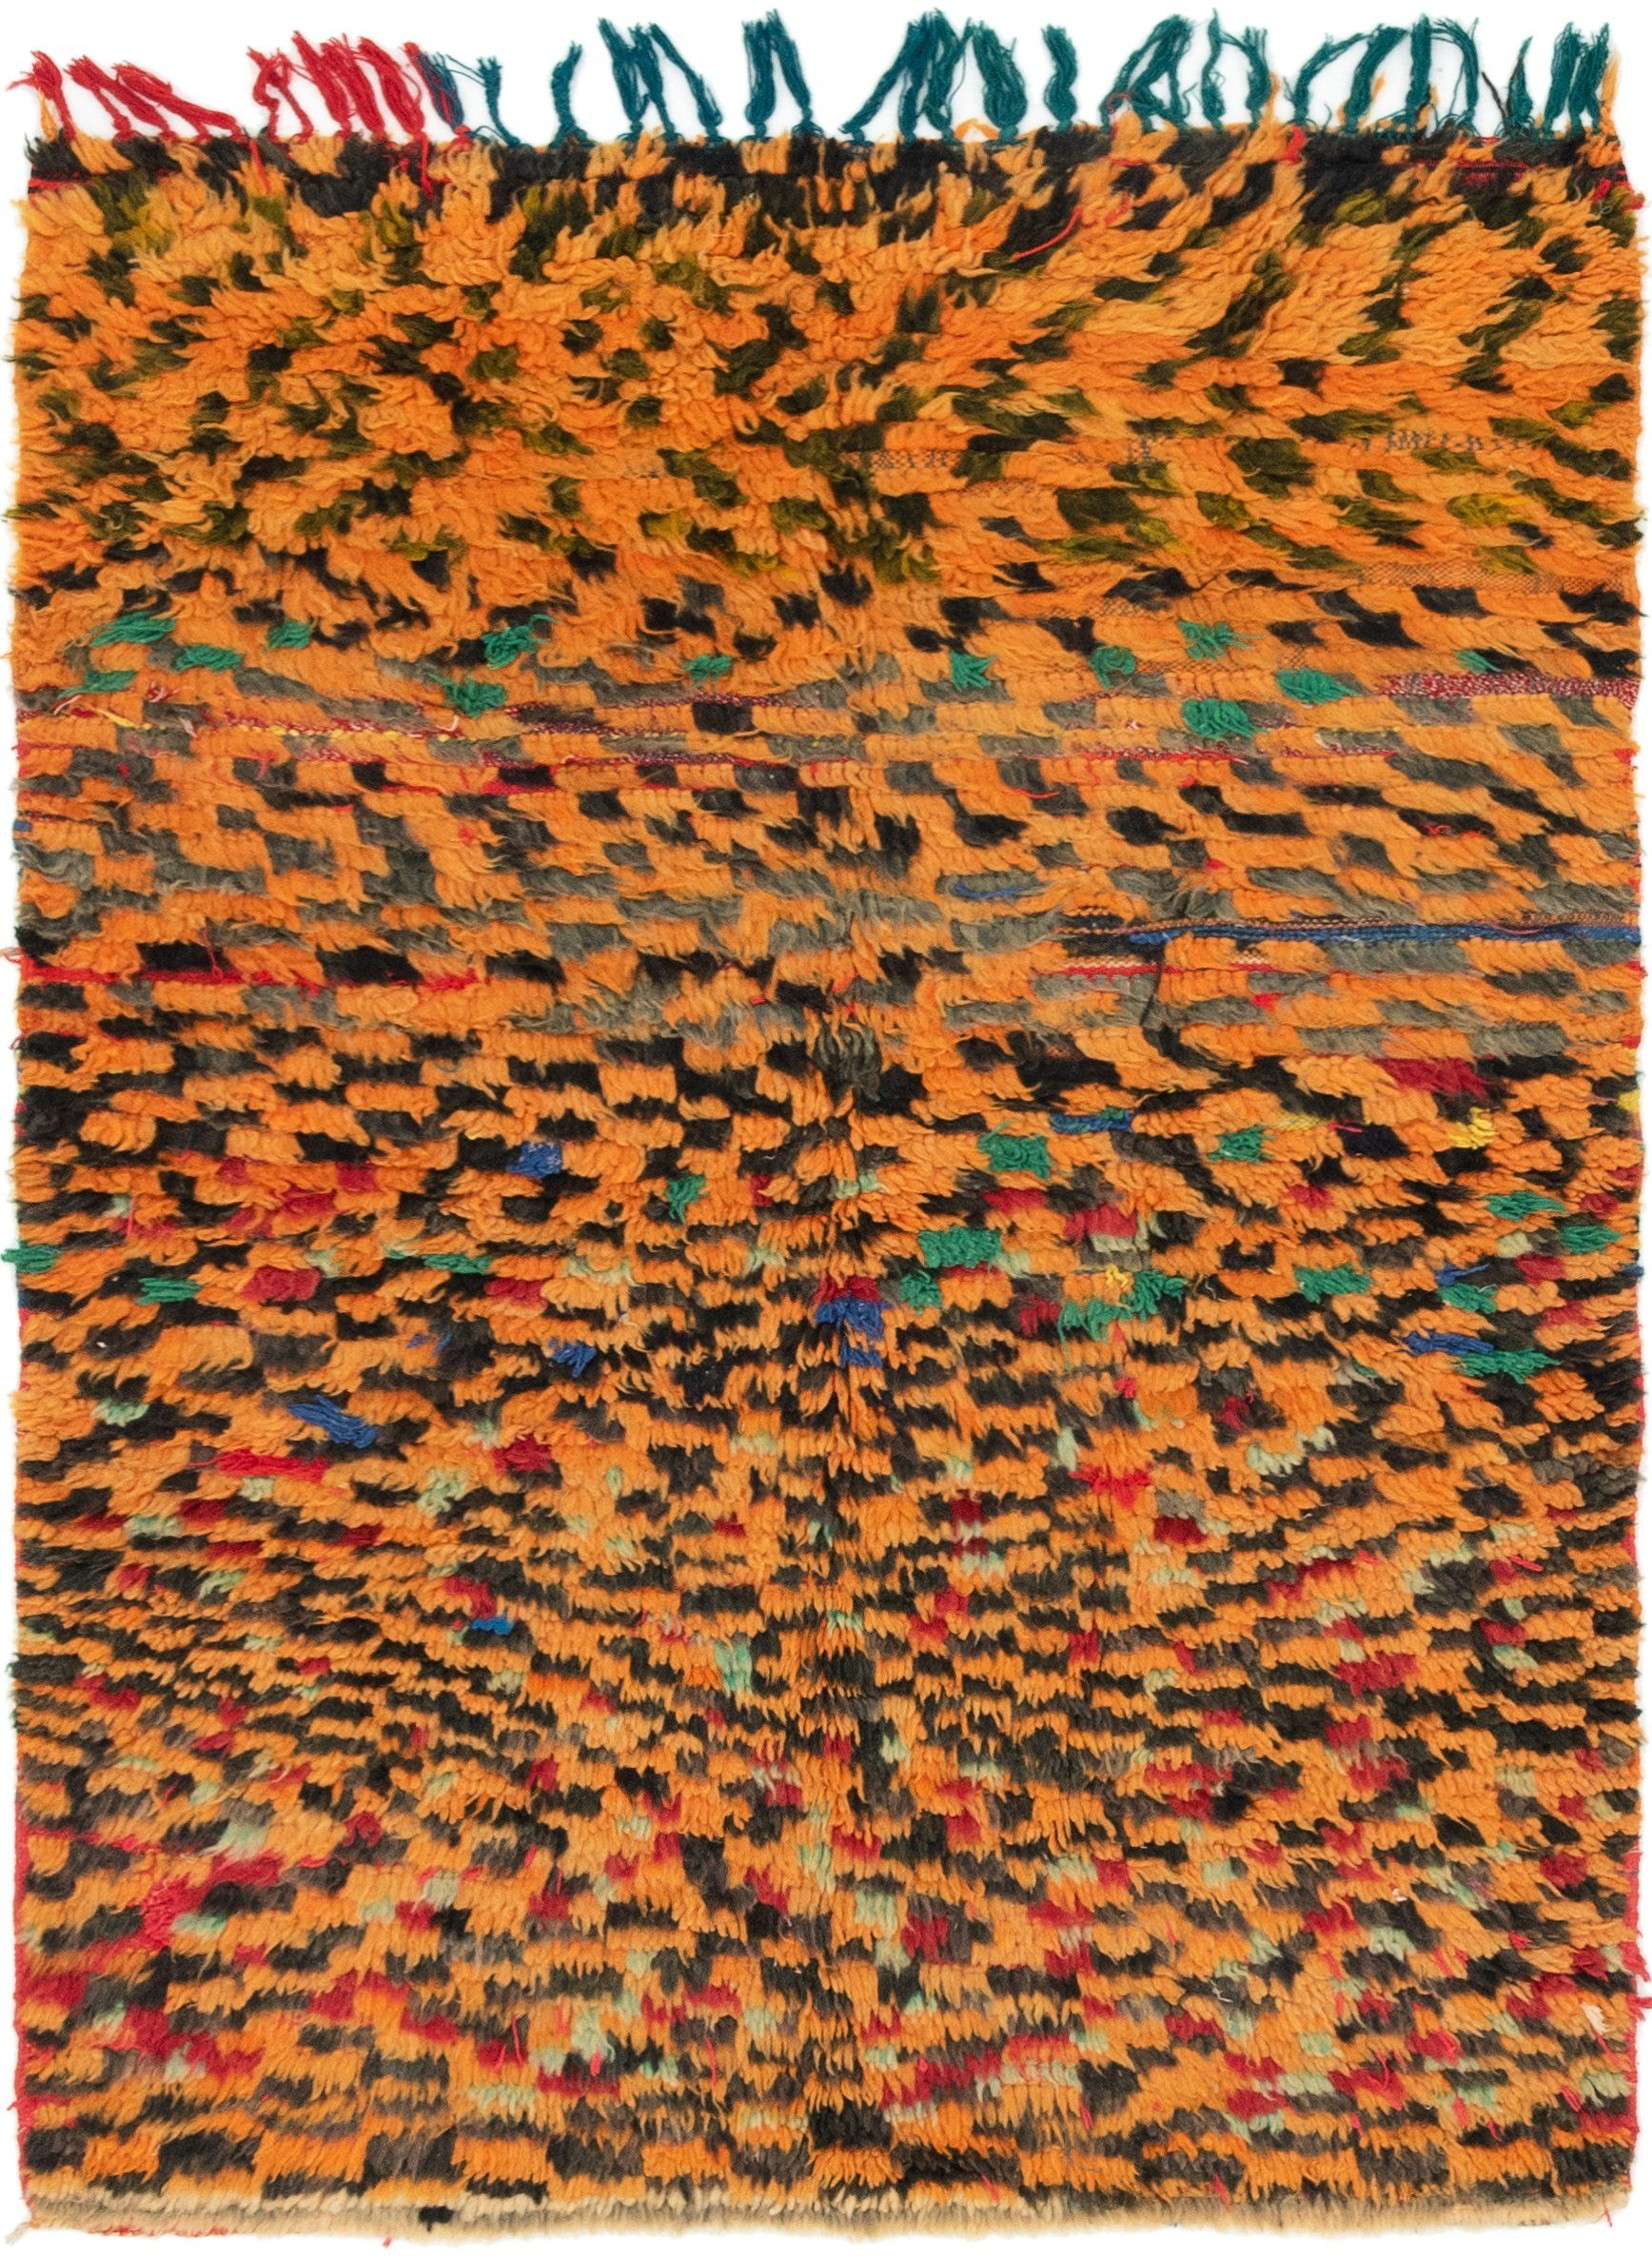 Orange Unique Loom 4 39 2 X 5 39 6 Moroccan Rug Oriental - Unique Tapijt